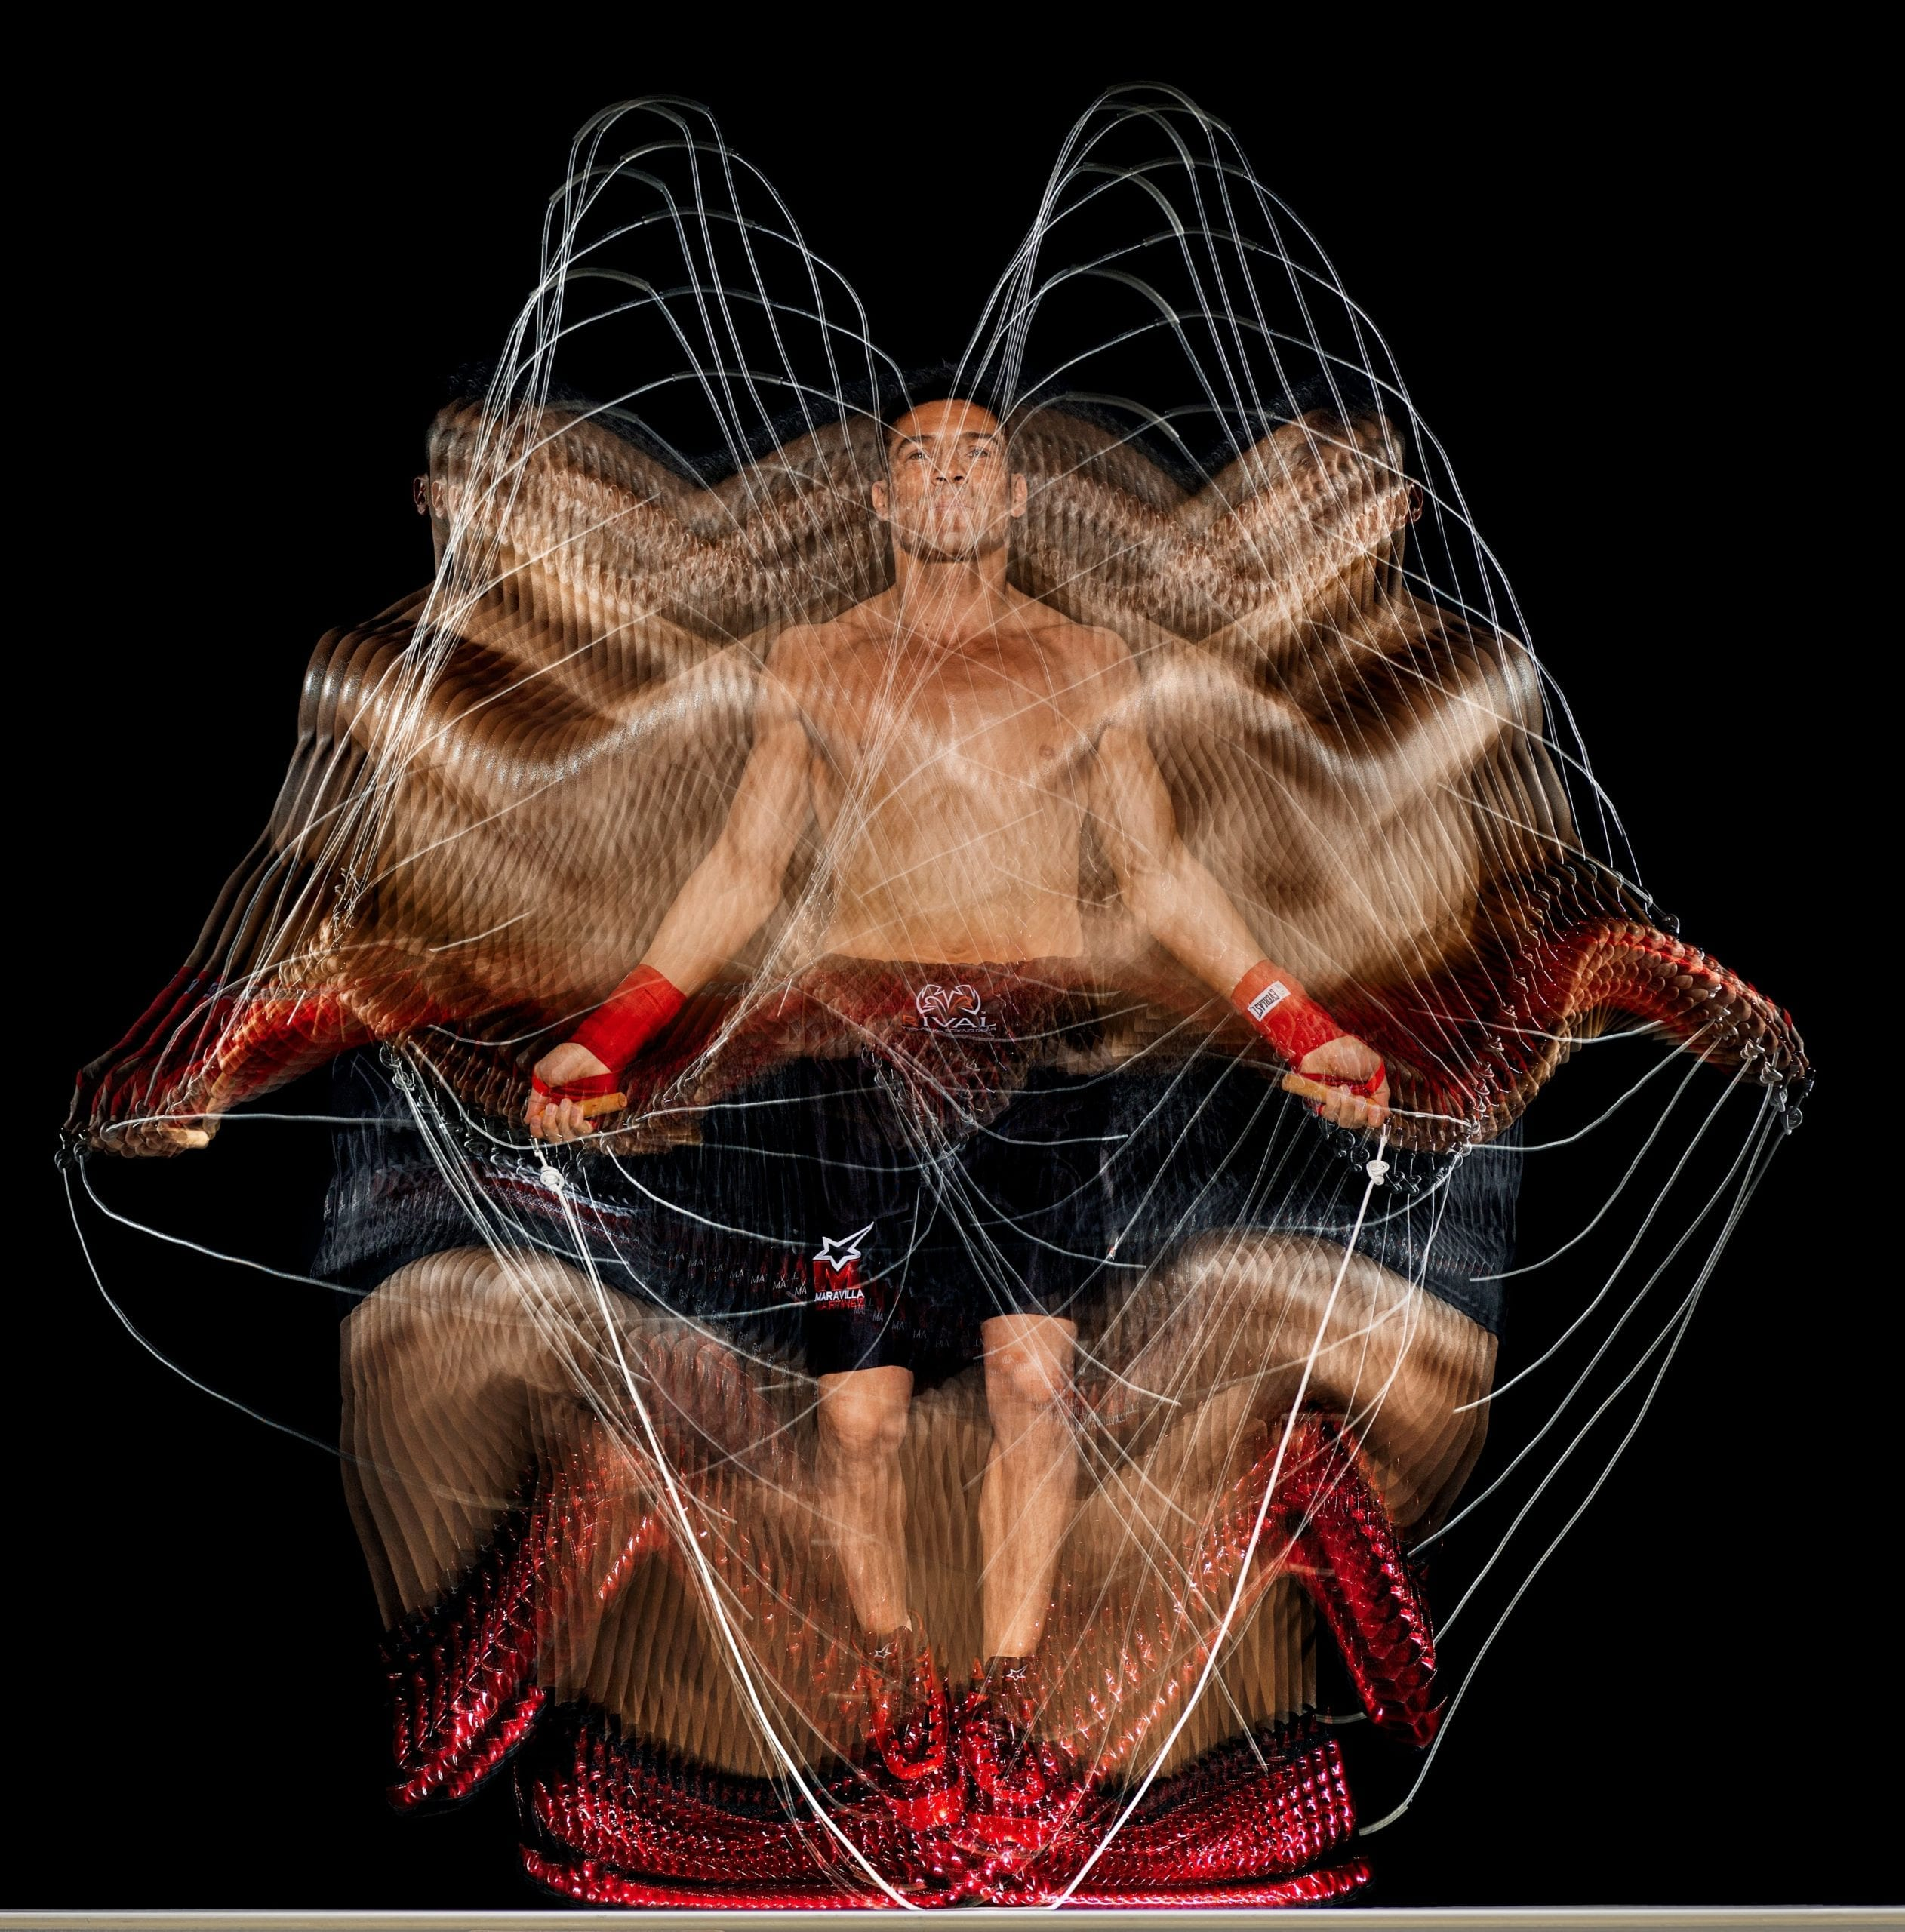 Howard Schatz (American, born 1940). Boxing Study 1805 Sergio Martinez, 2010. Archival pigment print, 42 x 42½ in. (106.7 x 108 cm). Photograph by Howard Schatz from At the Fights: Inside the World of Professional Boxing. Courtesy of the Staley-Wise Gallery, New York